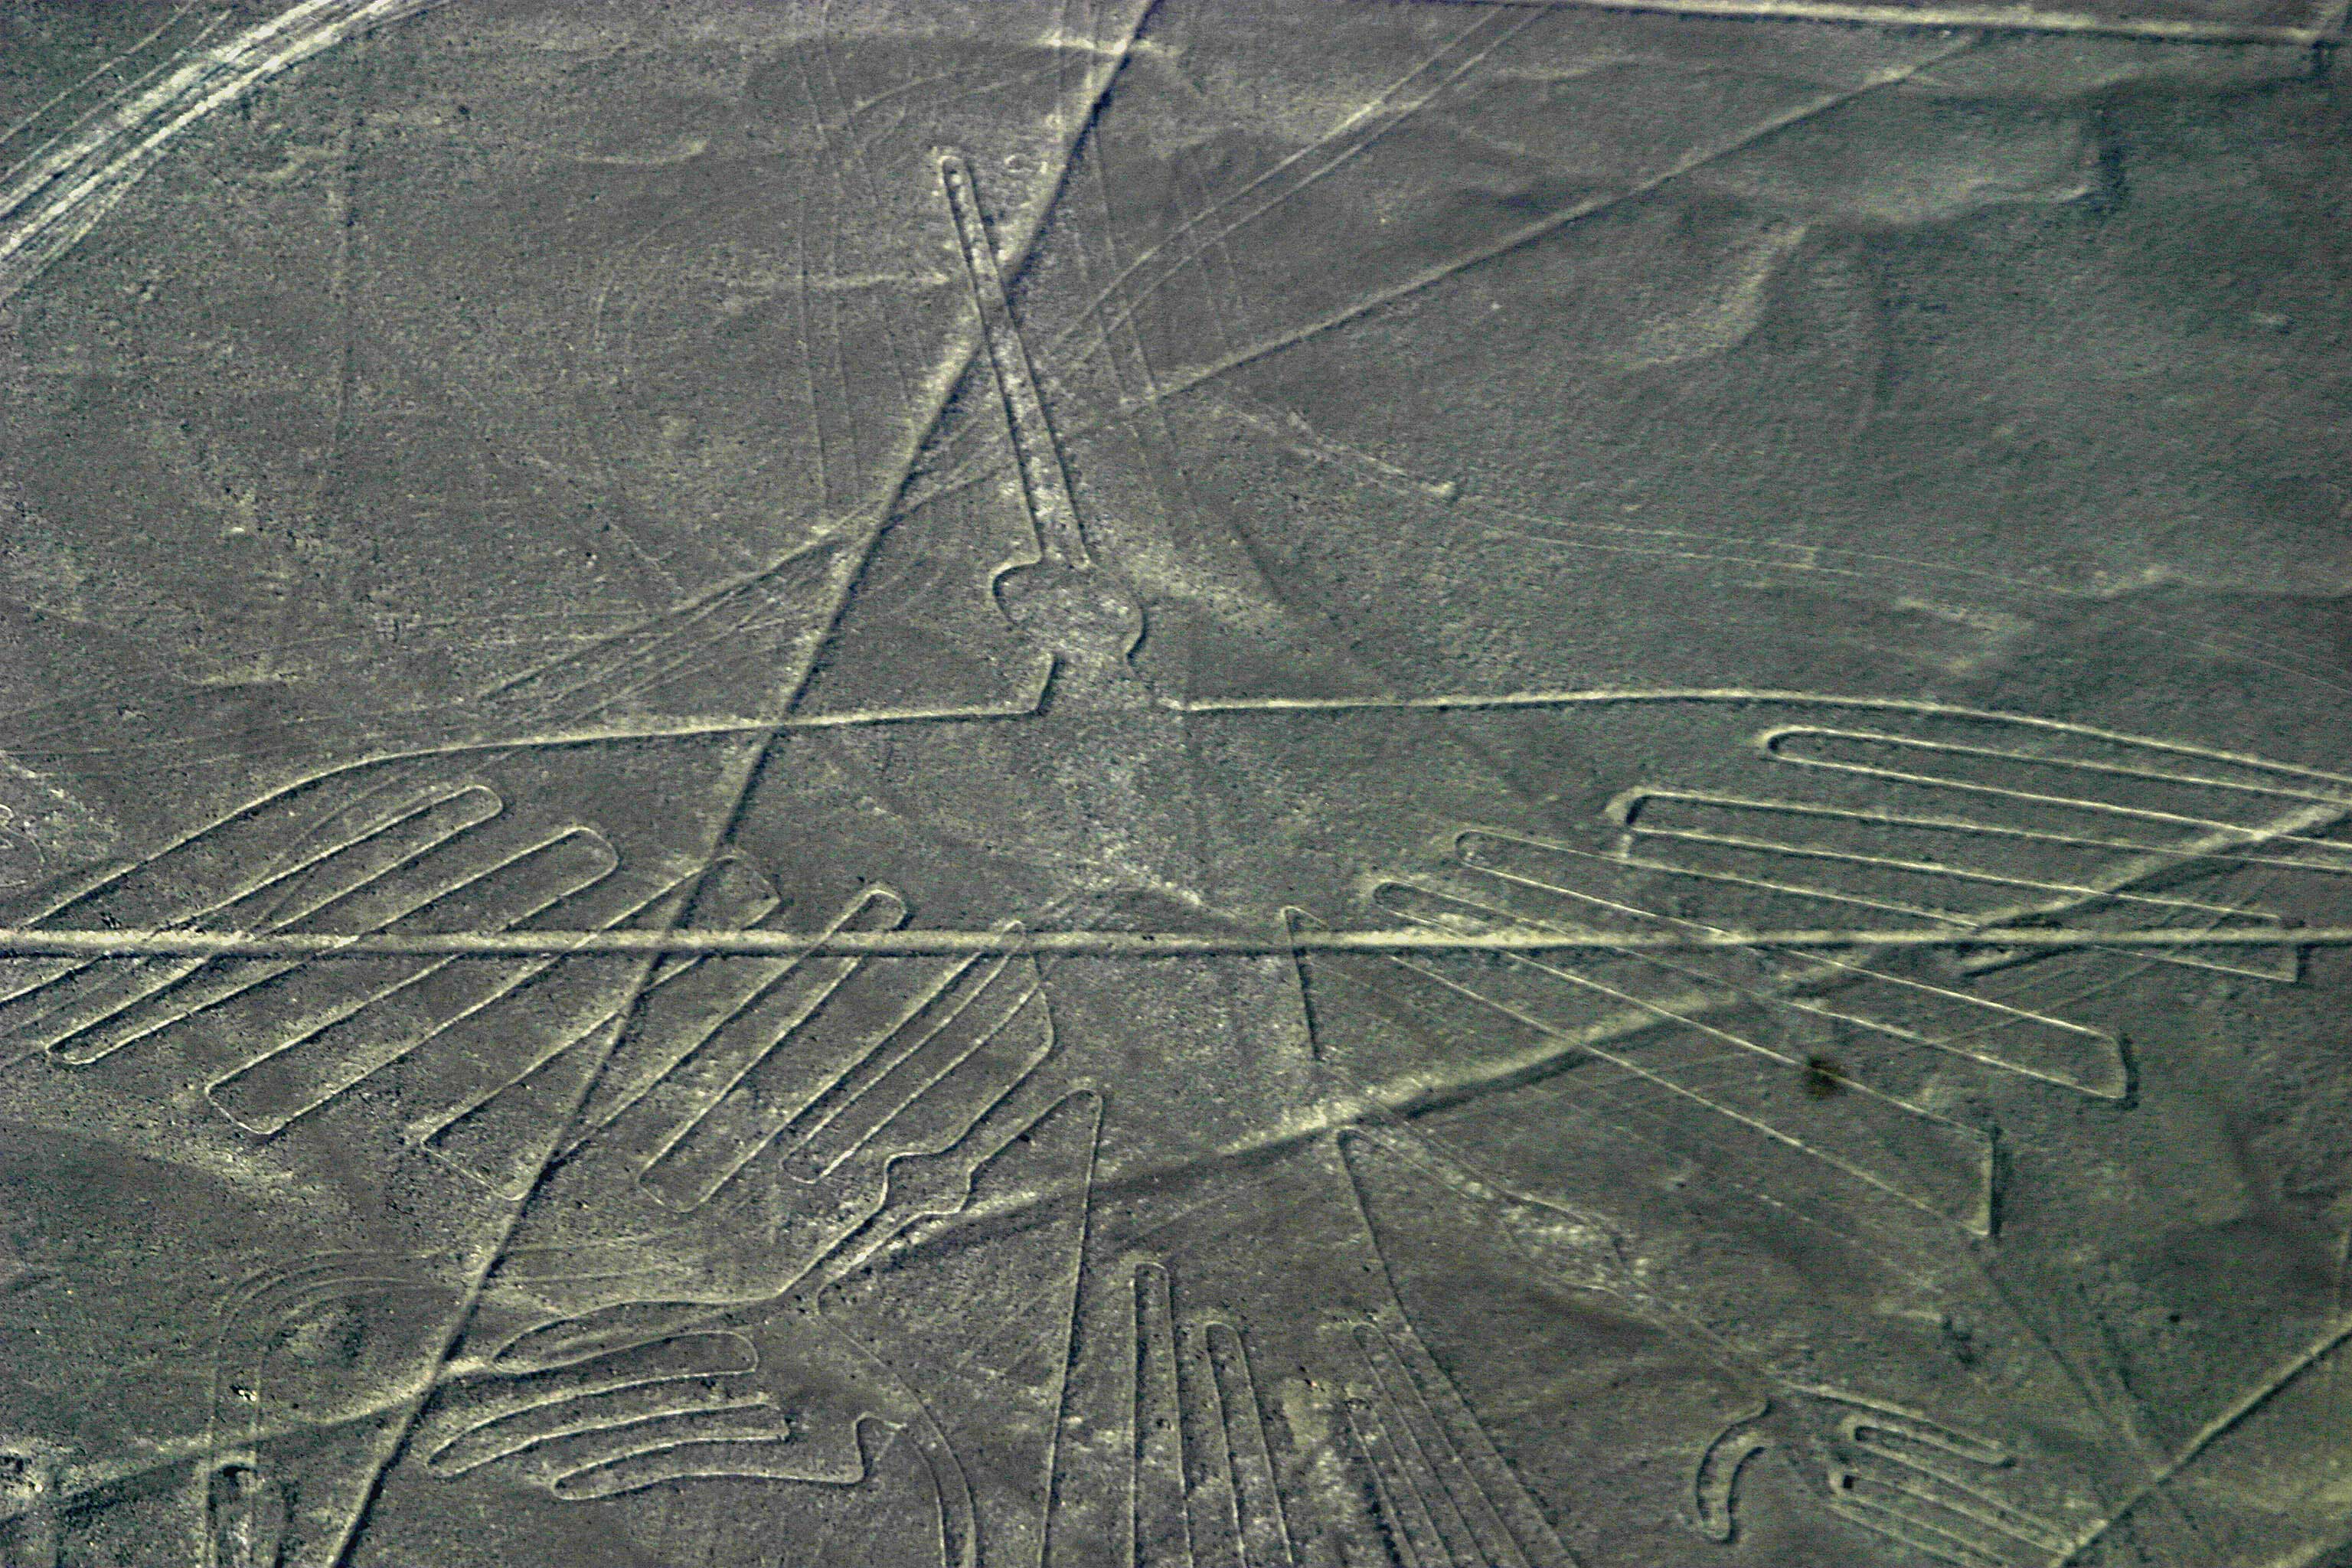 nazca lines what they might be Nazca lines – peru by wcc on  due to the enormous size they can barely be seen from a great  and what significance they might have tagged as: nazca lines,.